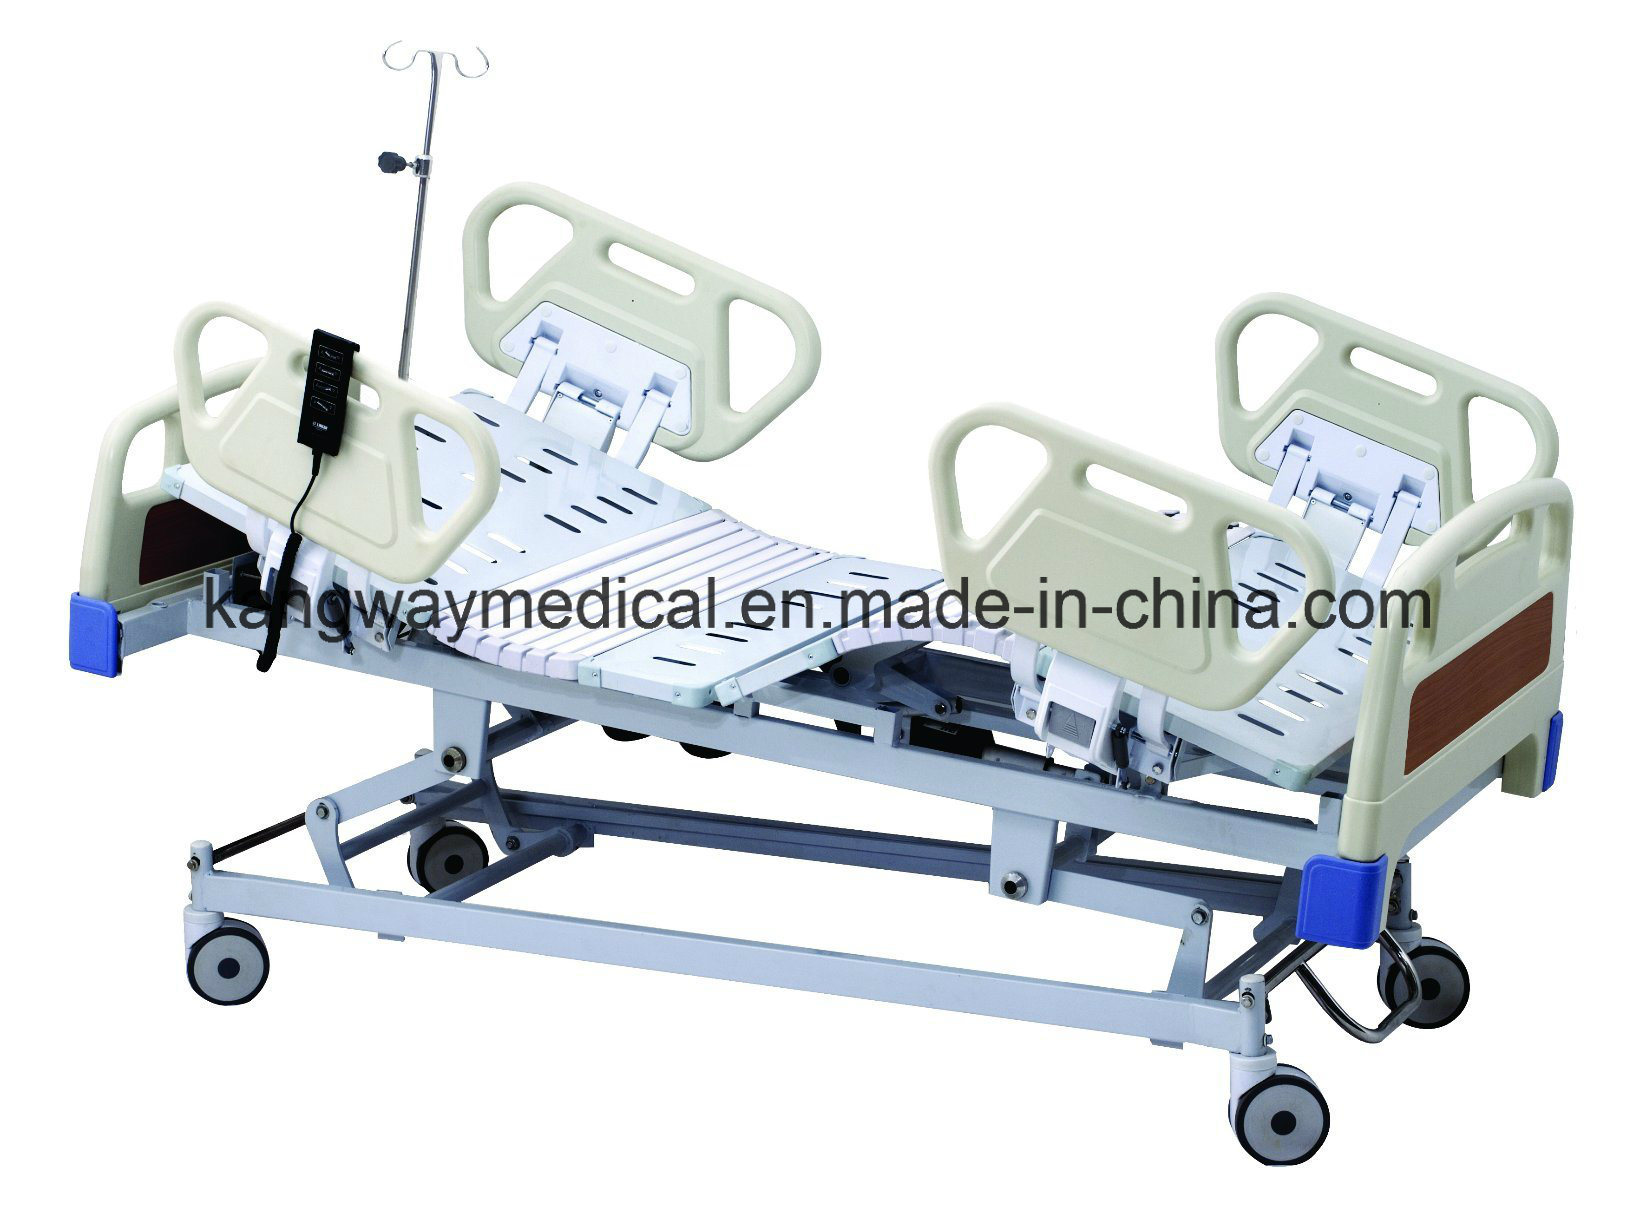 Icu Electric Medical Bed With Five Functions Hospital Furniture (Slv B4150)